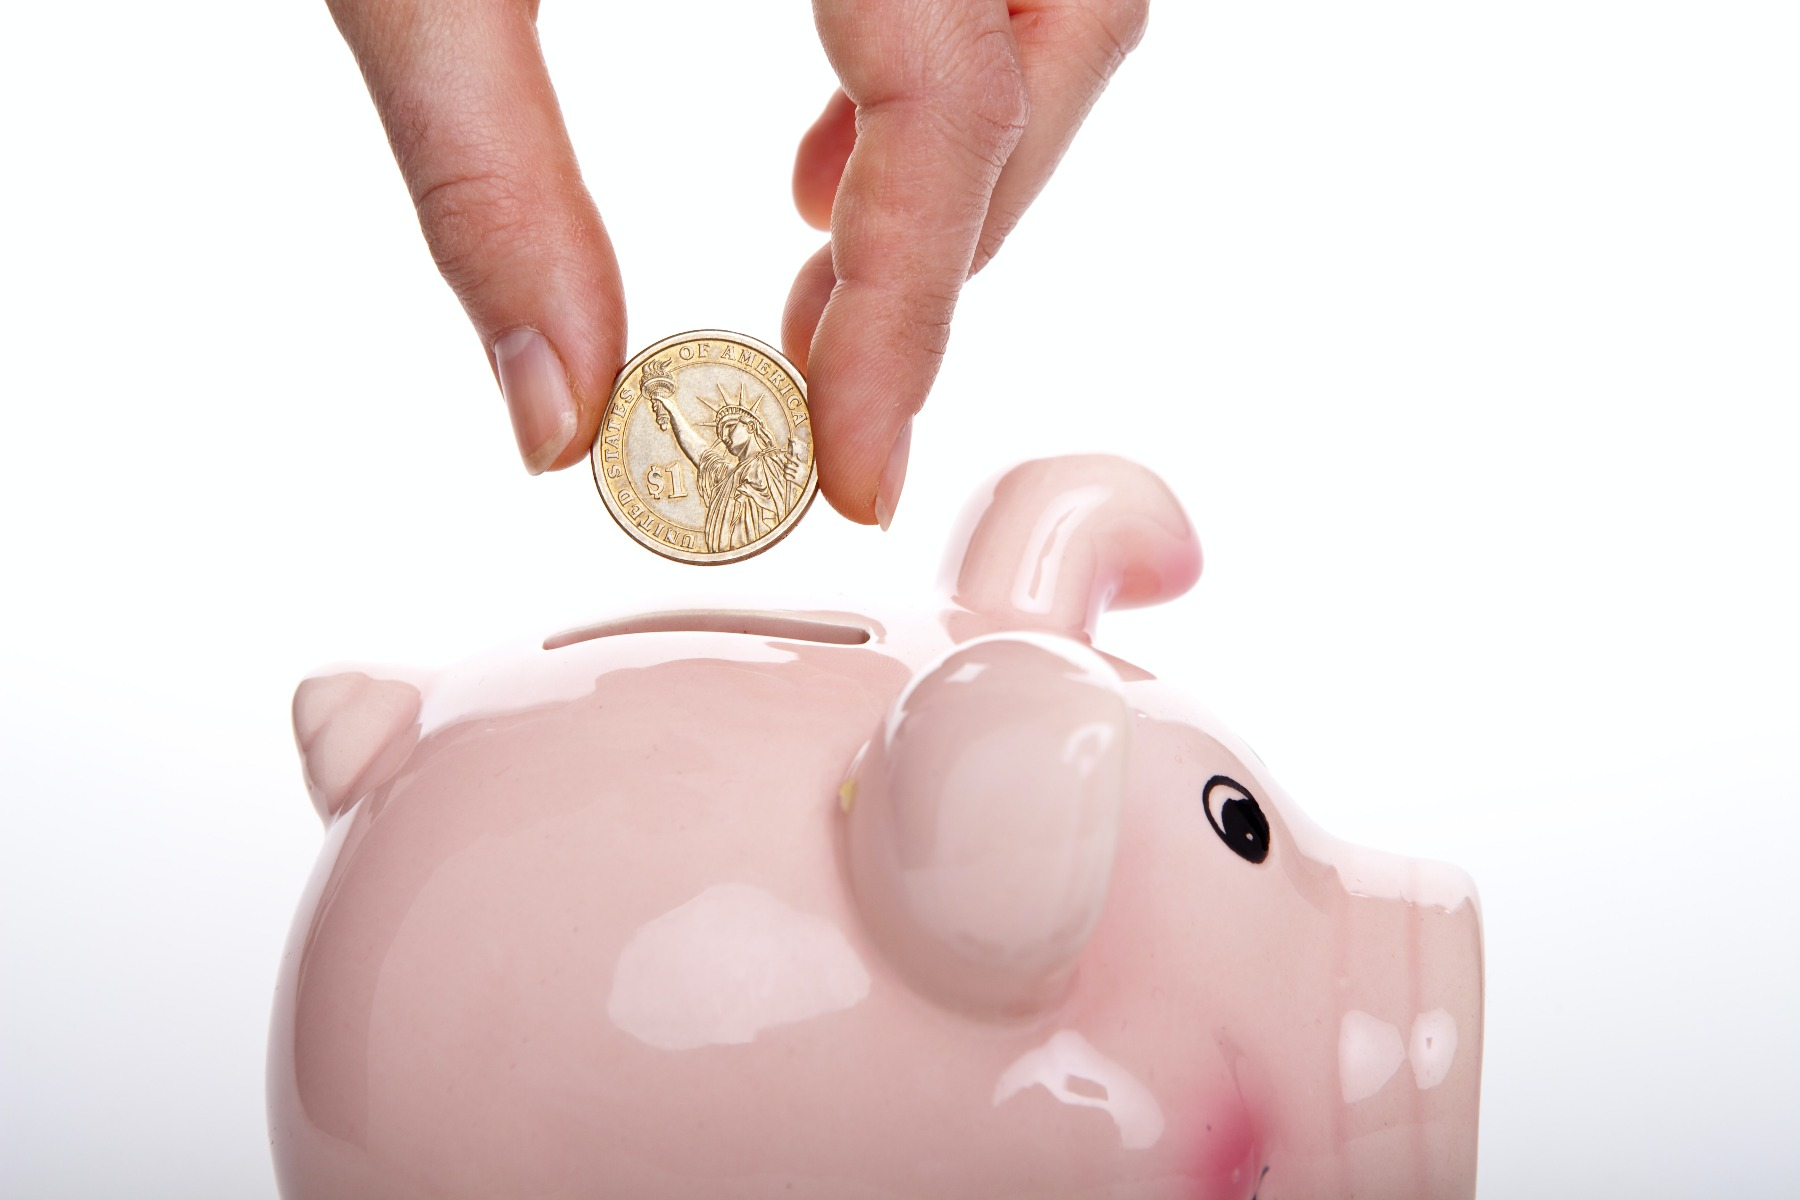 hand dropping $1 coin into pink piggy bank